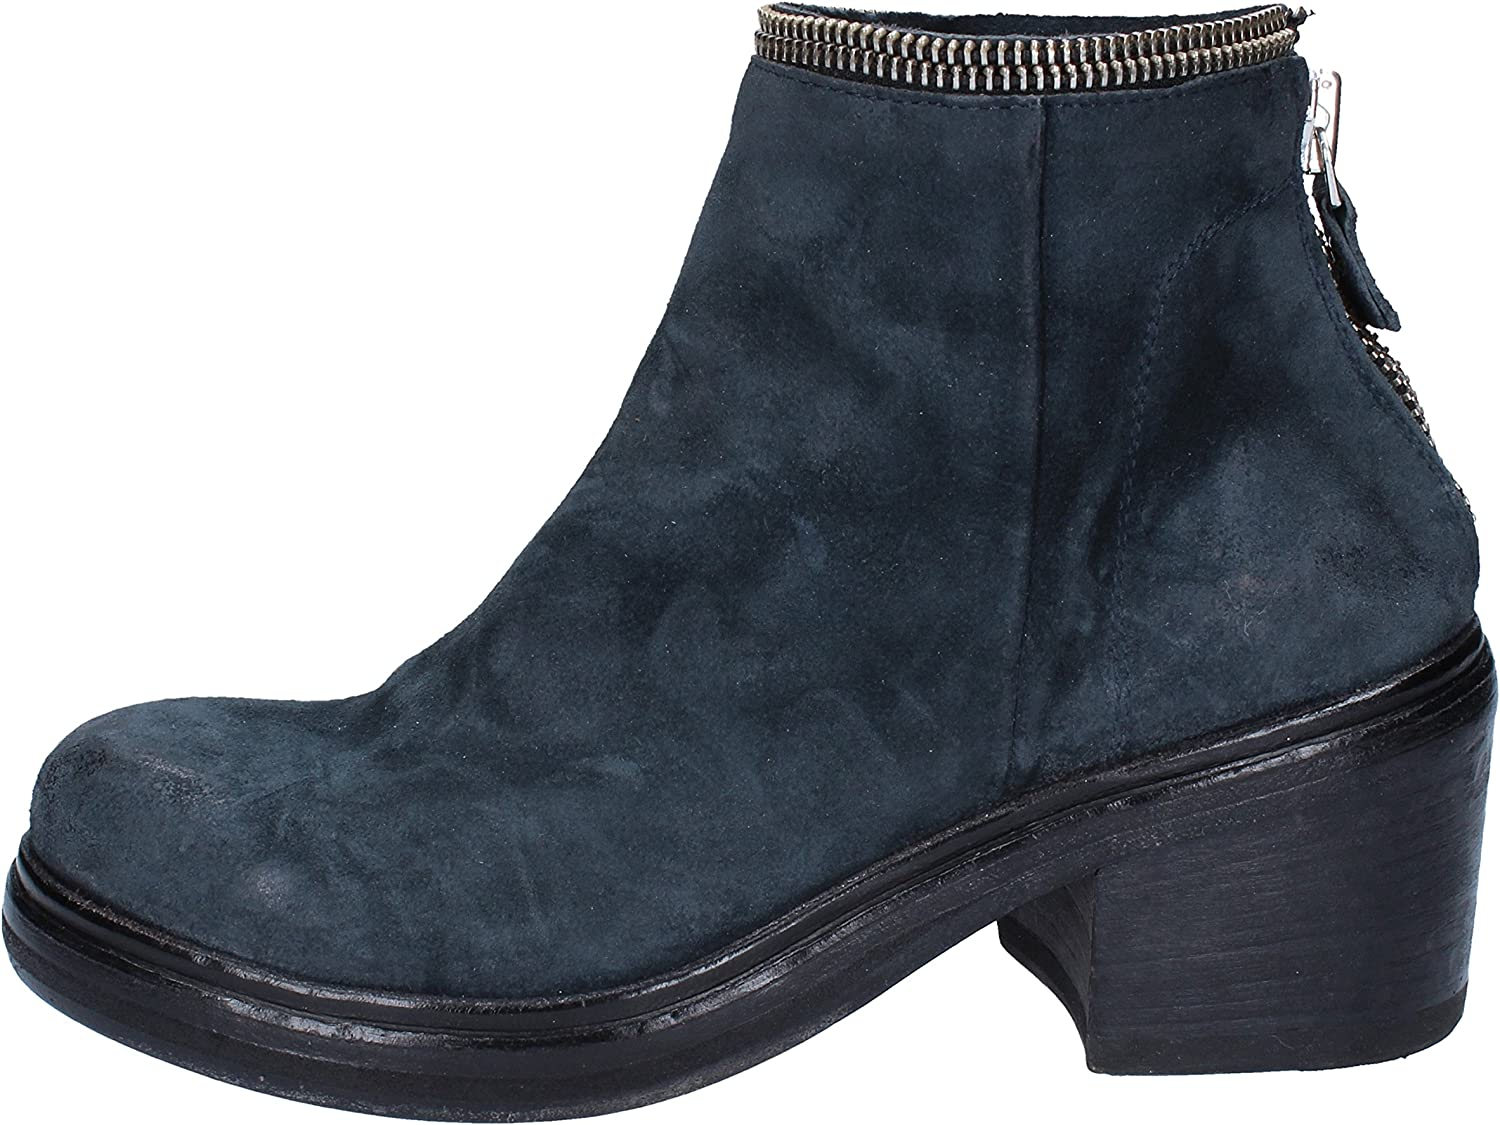 MOMA Boots Womens Suede bluee